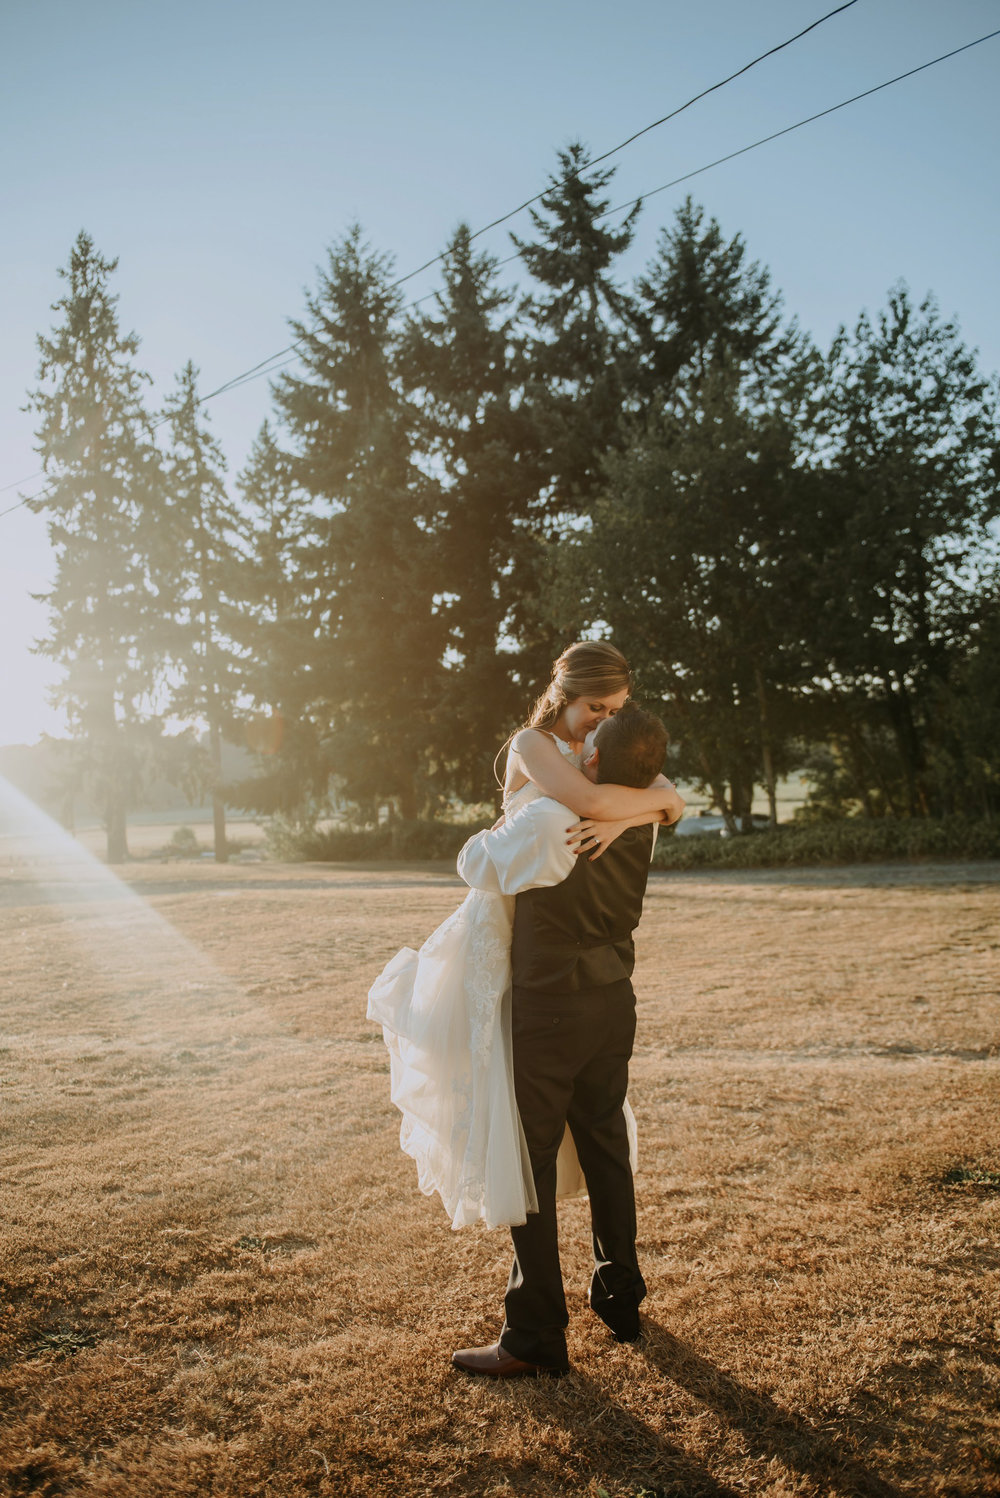 kristen-and-cody-the-kelley-farm-wedding-seattle-photographer-caitlyn-nikula-94.jpg